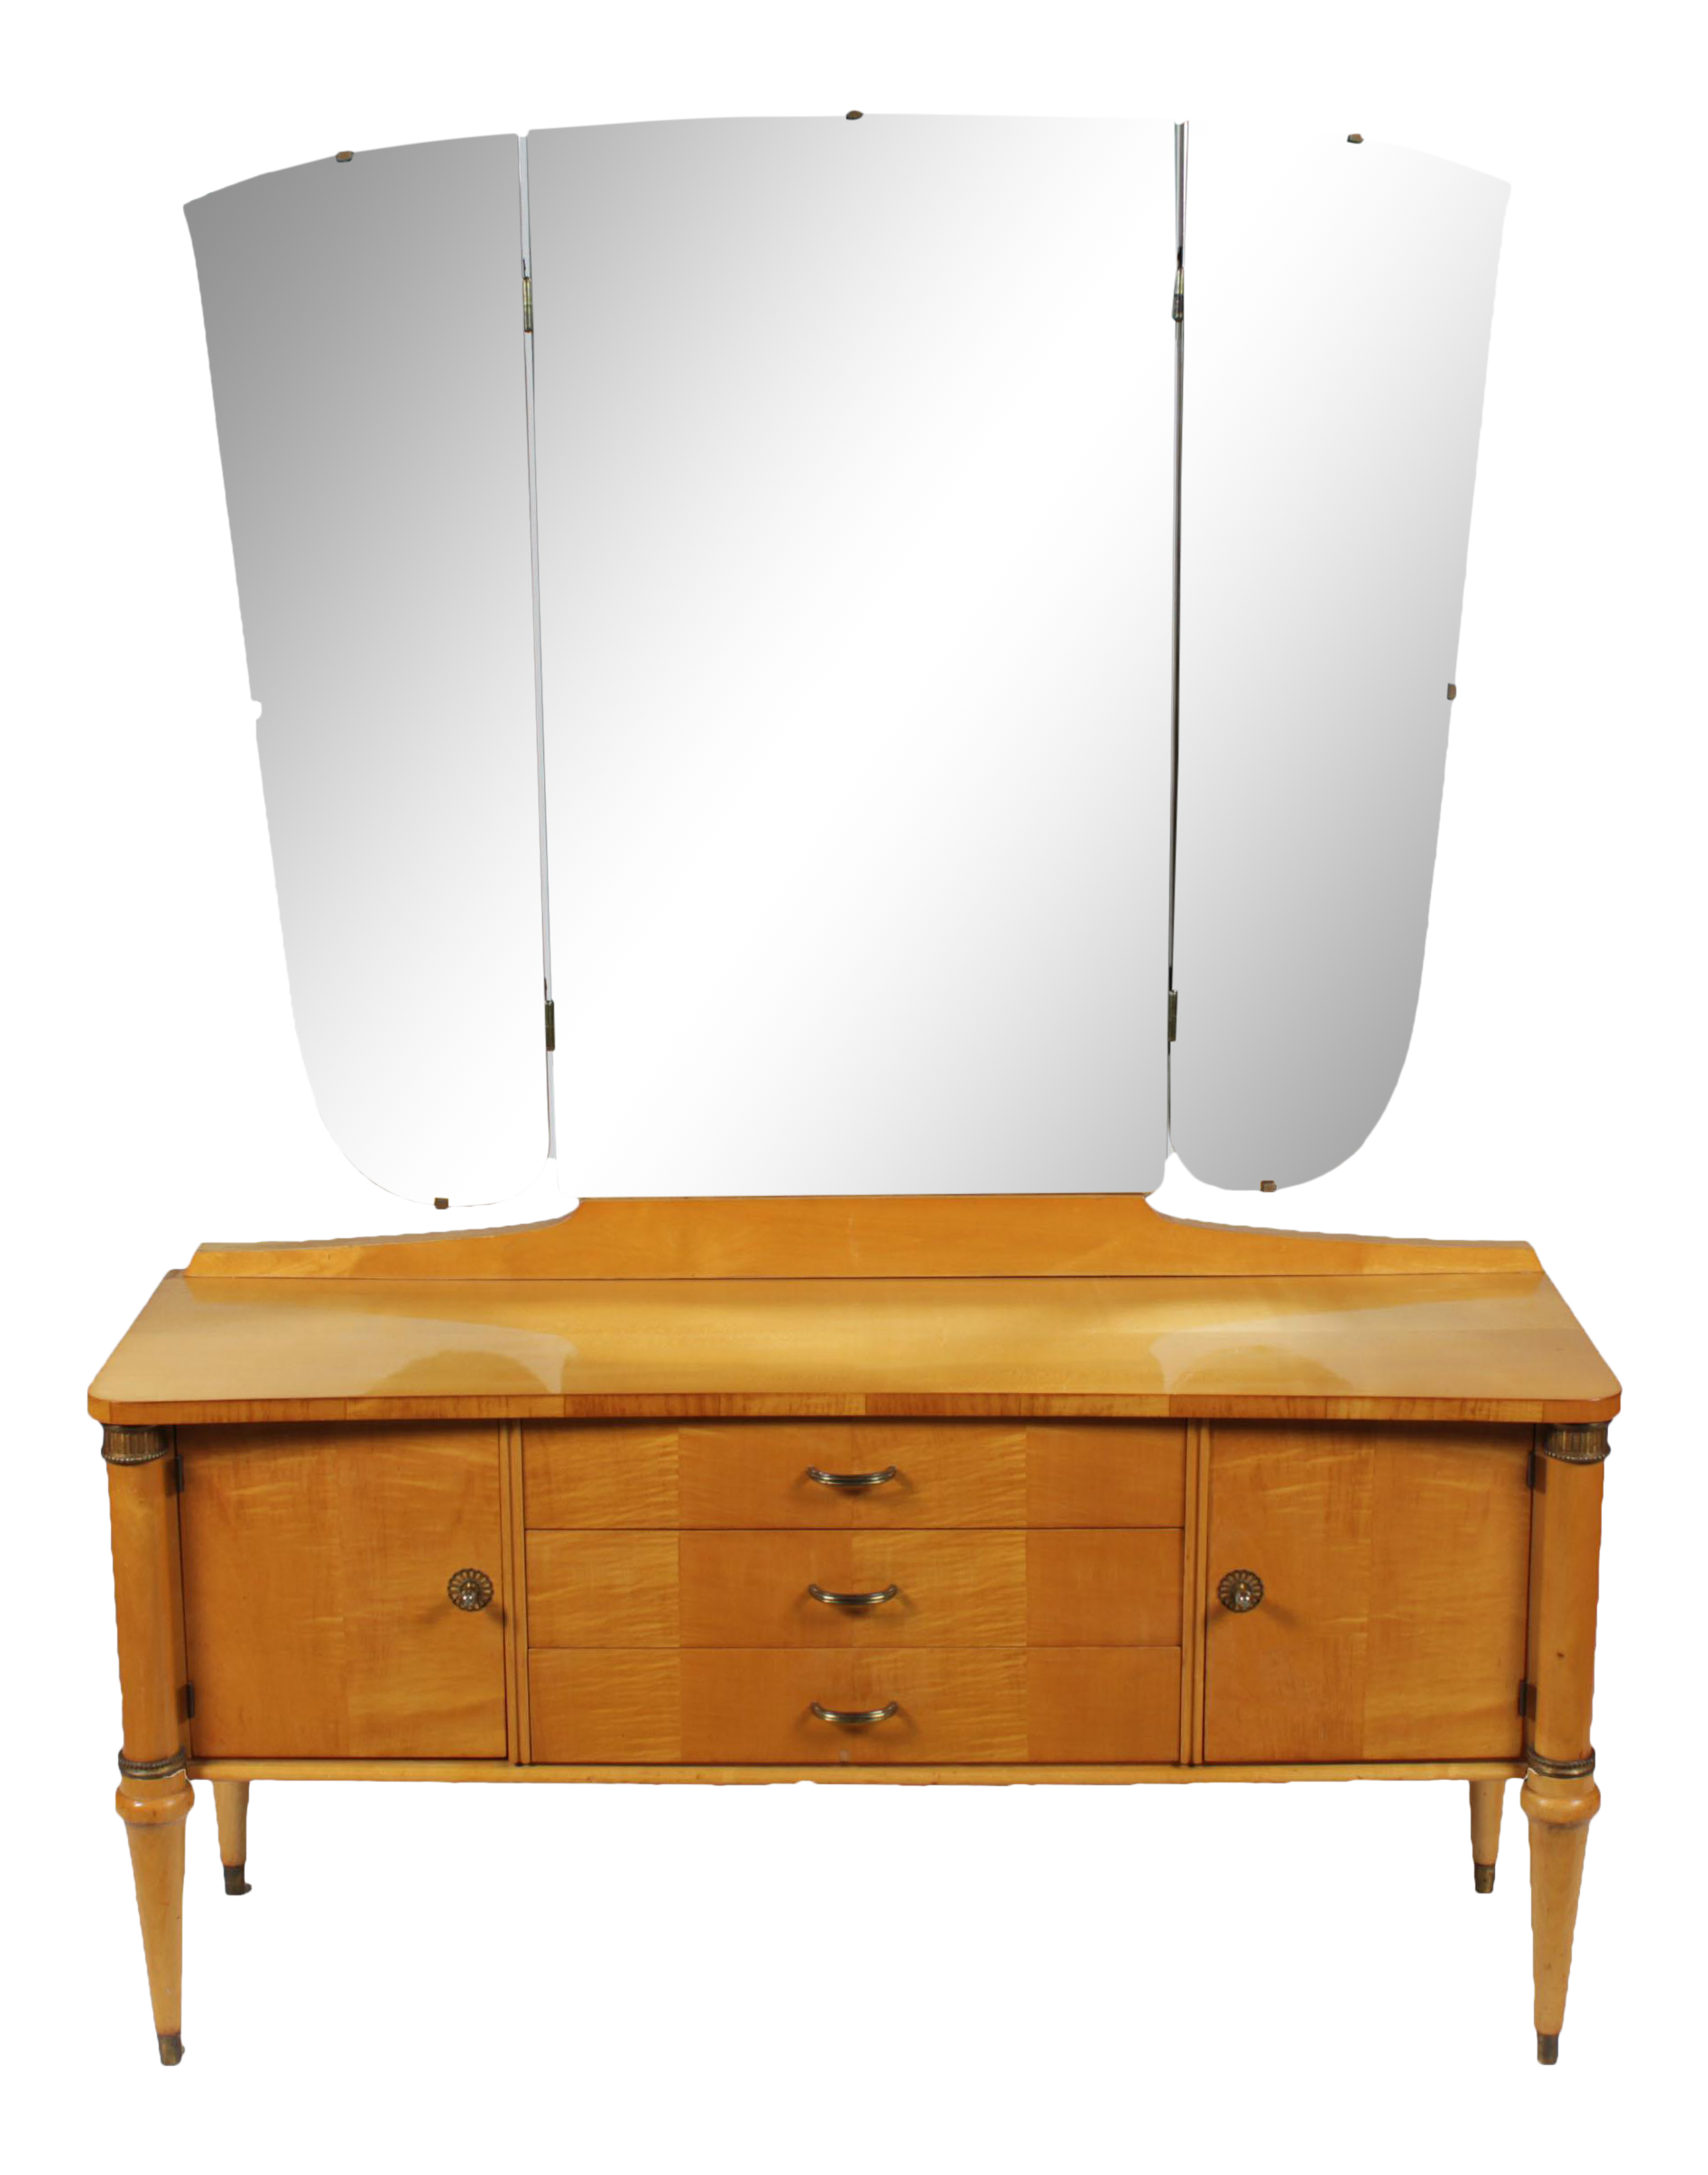 Furniture clipart vanity table. Dressing wooden dresser great